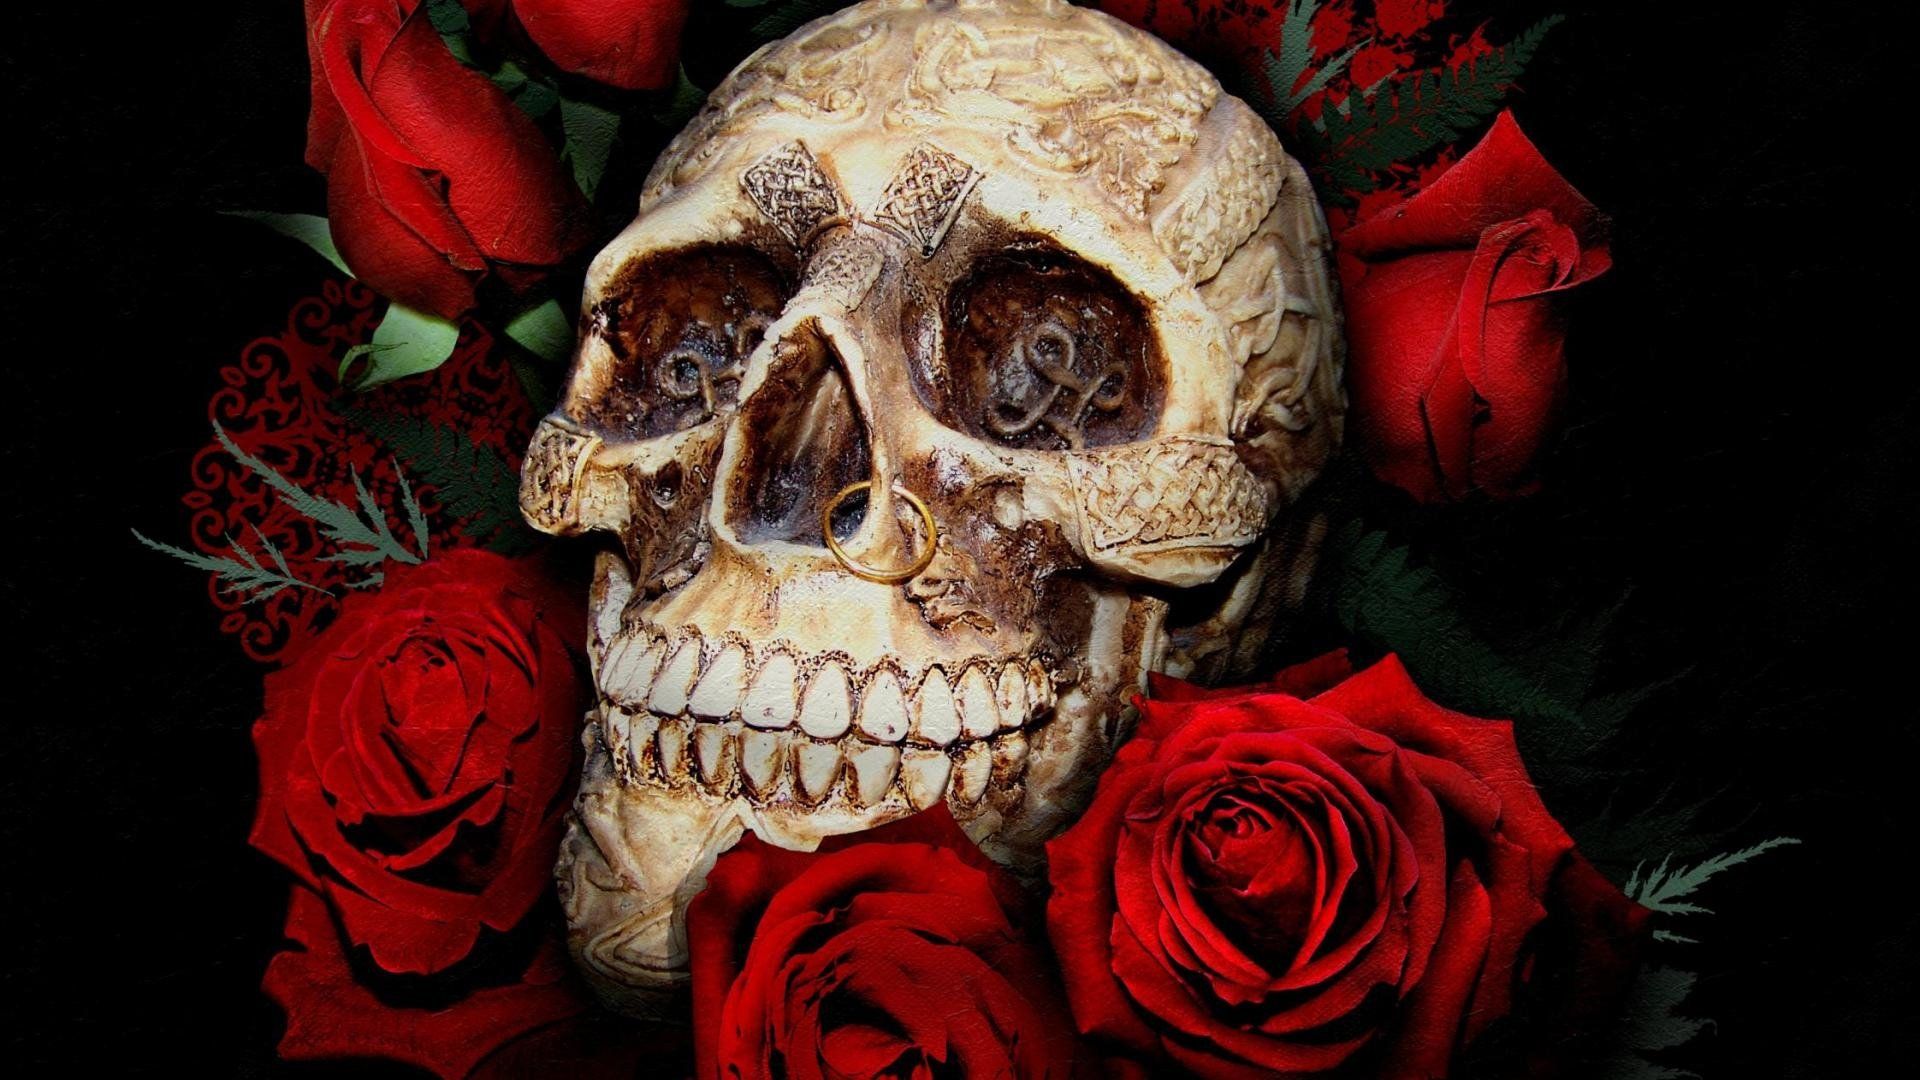 Cool 3d Flower Wallpaper Skull With Piercing And Roses Full Hd Wallpaper And